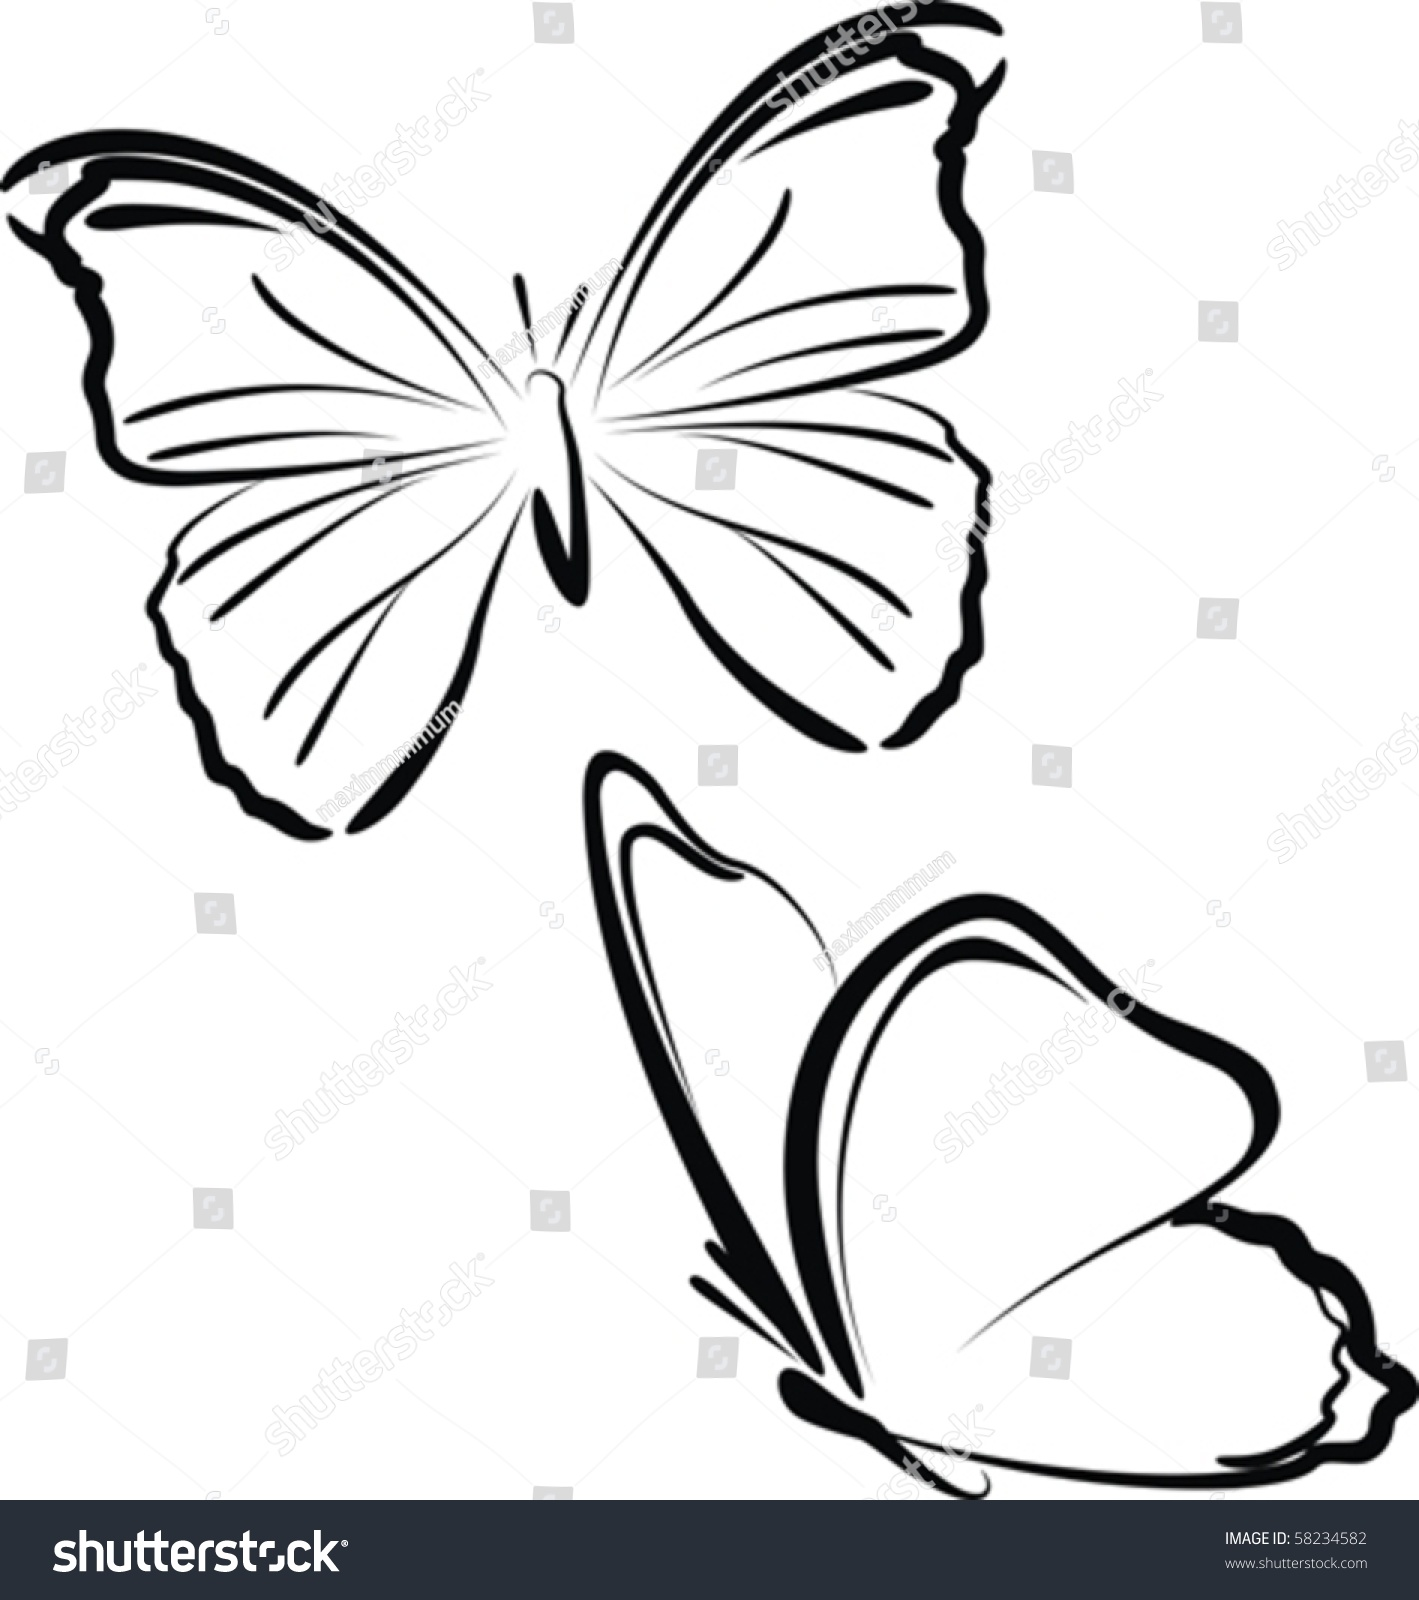 butterfly-flying-drawings